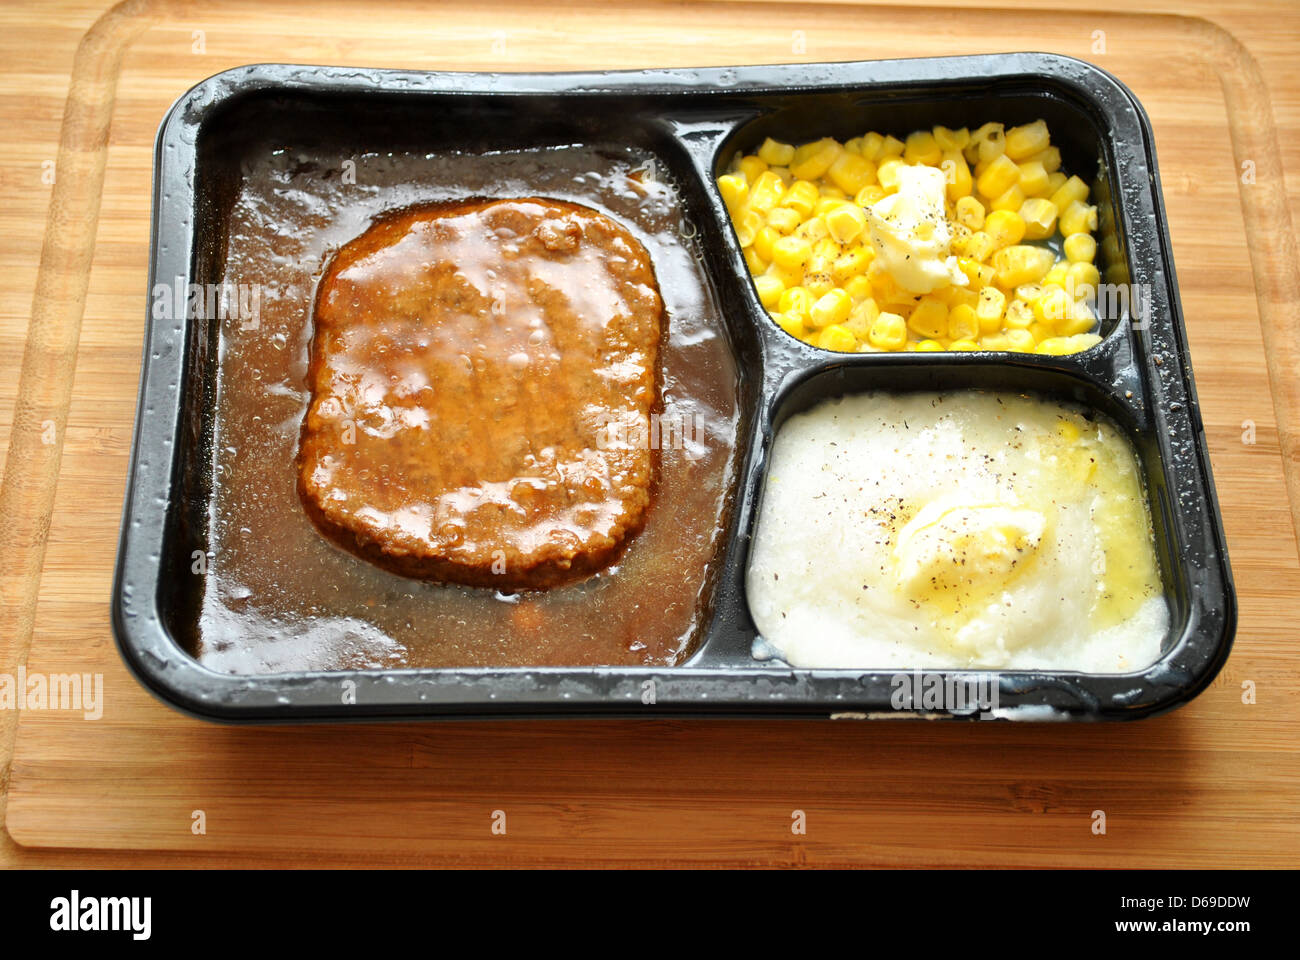 Tasty TV Dinner with Pepper and Butter Added - Stock Image